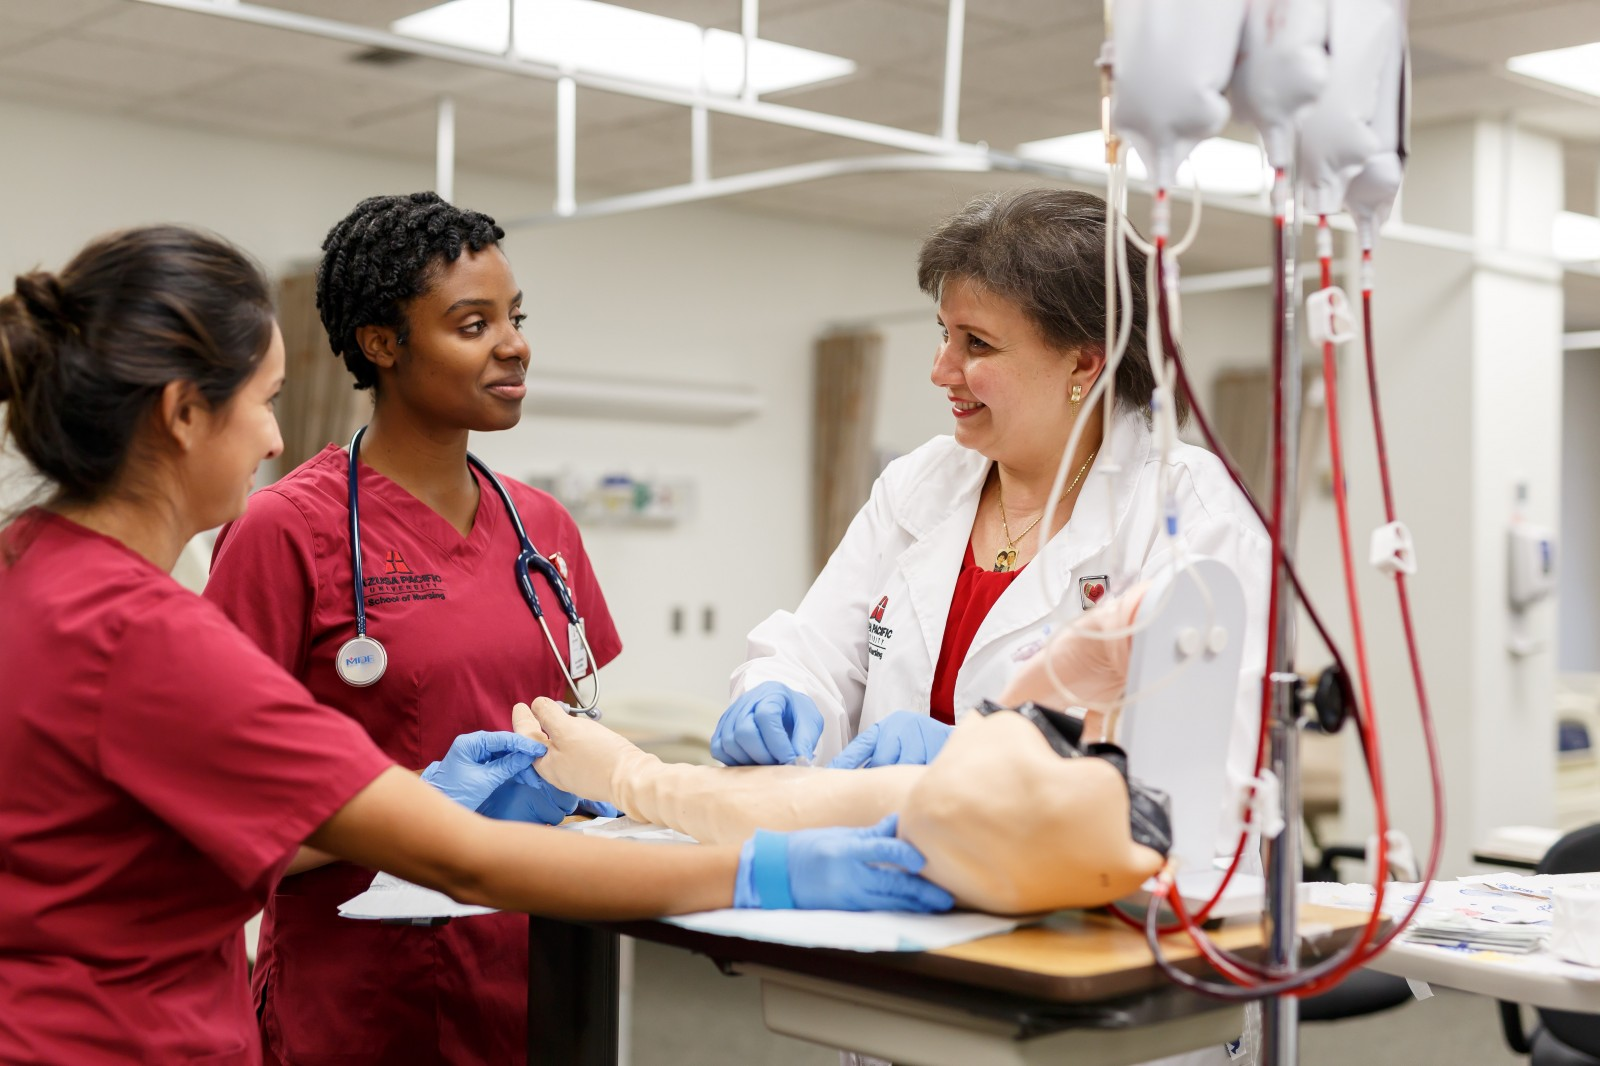 APU's Entry-Level Master's in Nursing (ELM) program is designed for students who hold baccalaureate or higher degrees in other disciplines but want to pursue bachelor's and master's degrees in nursing.